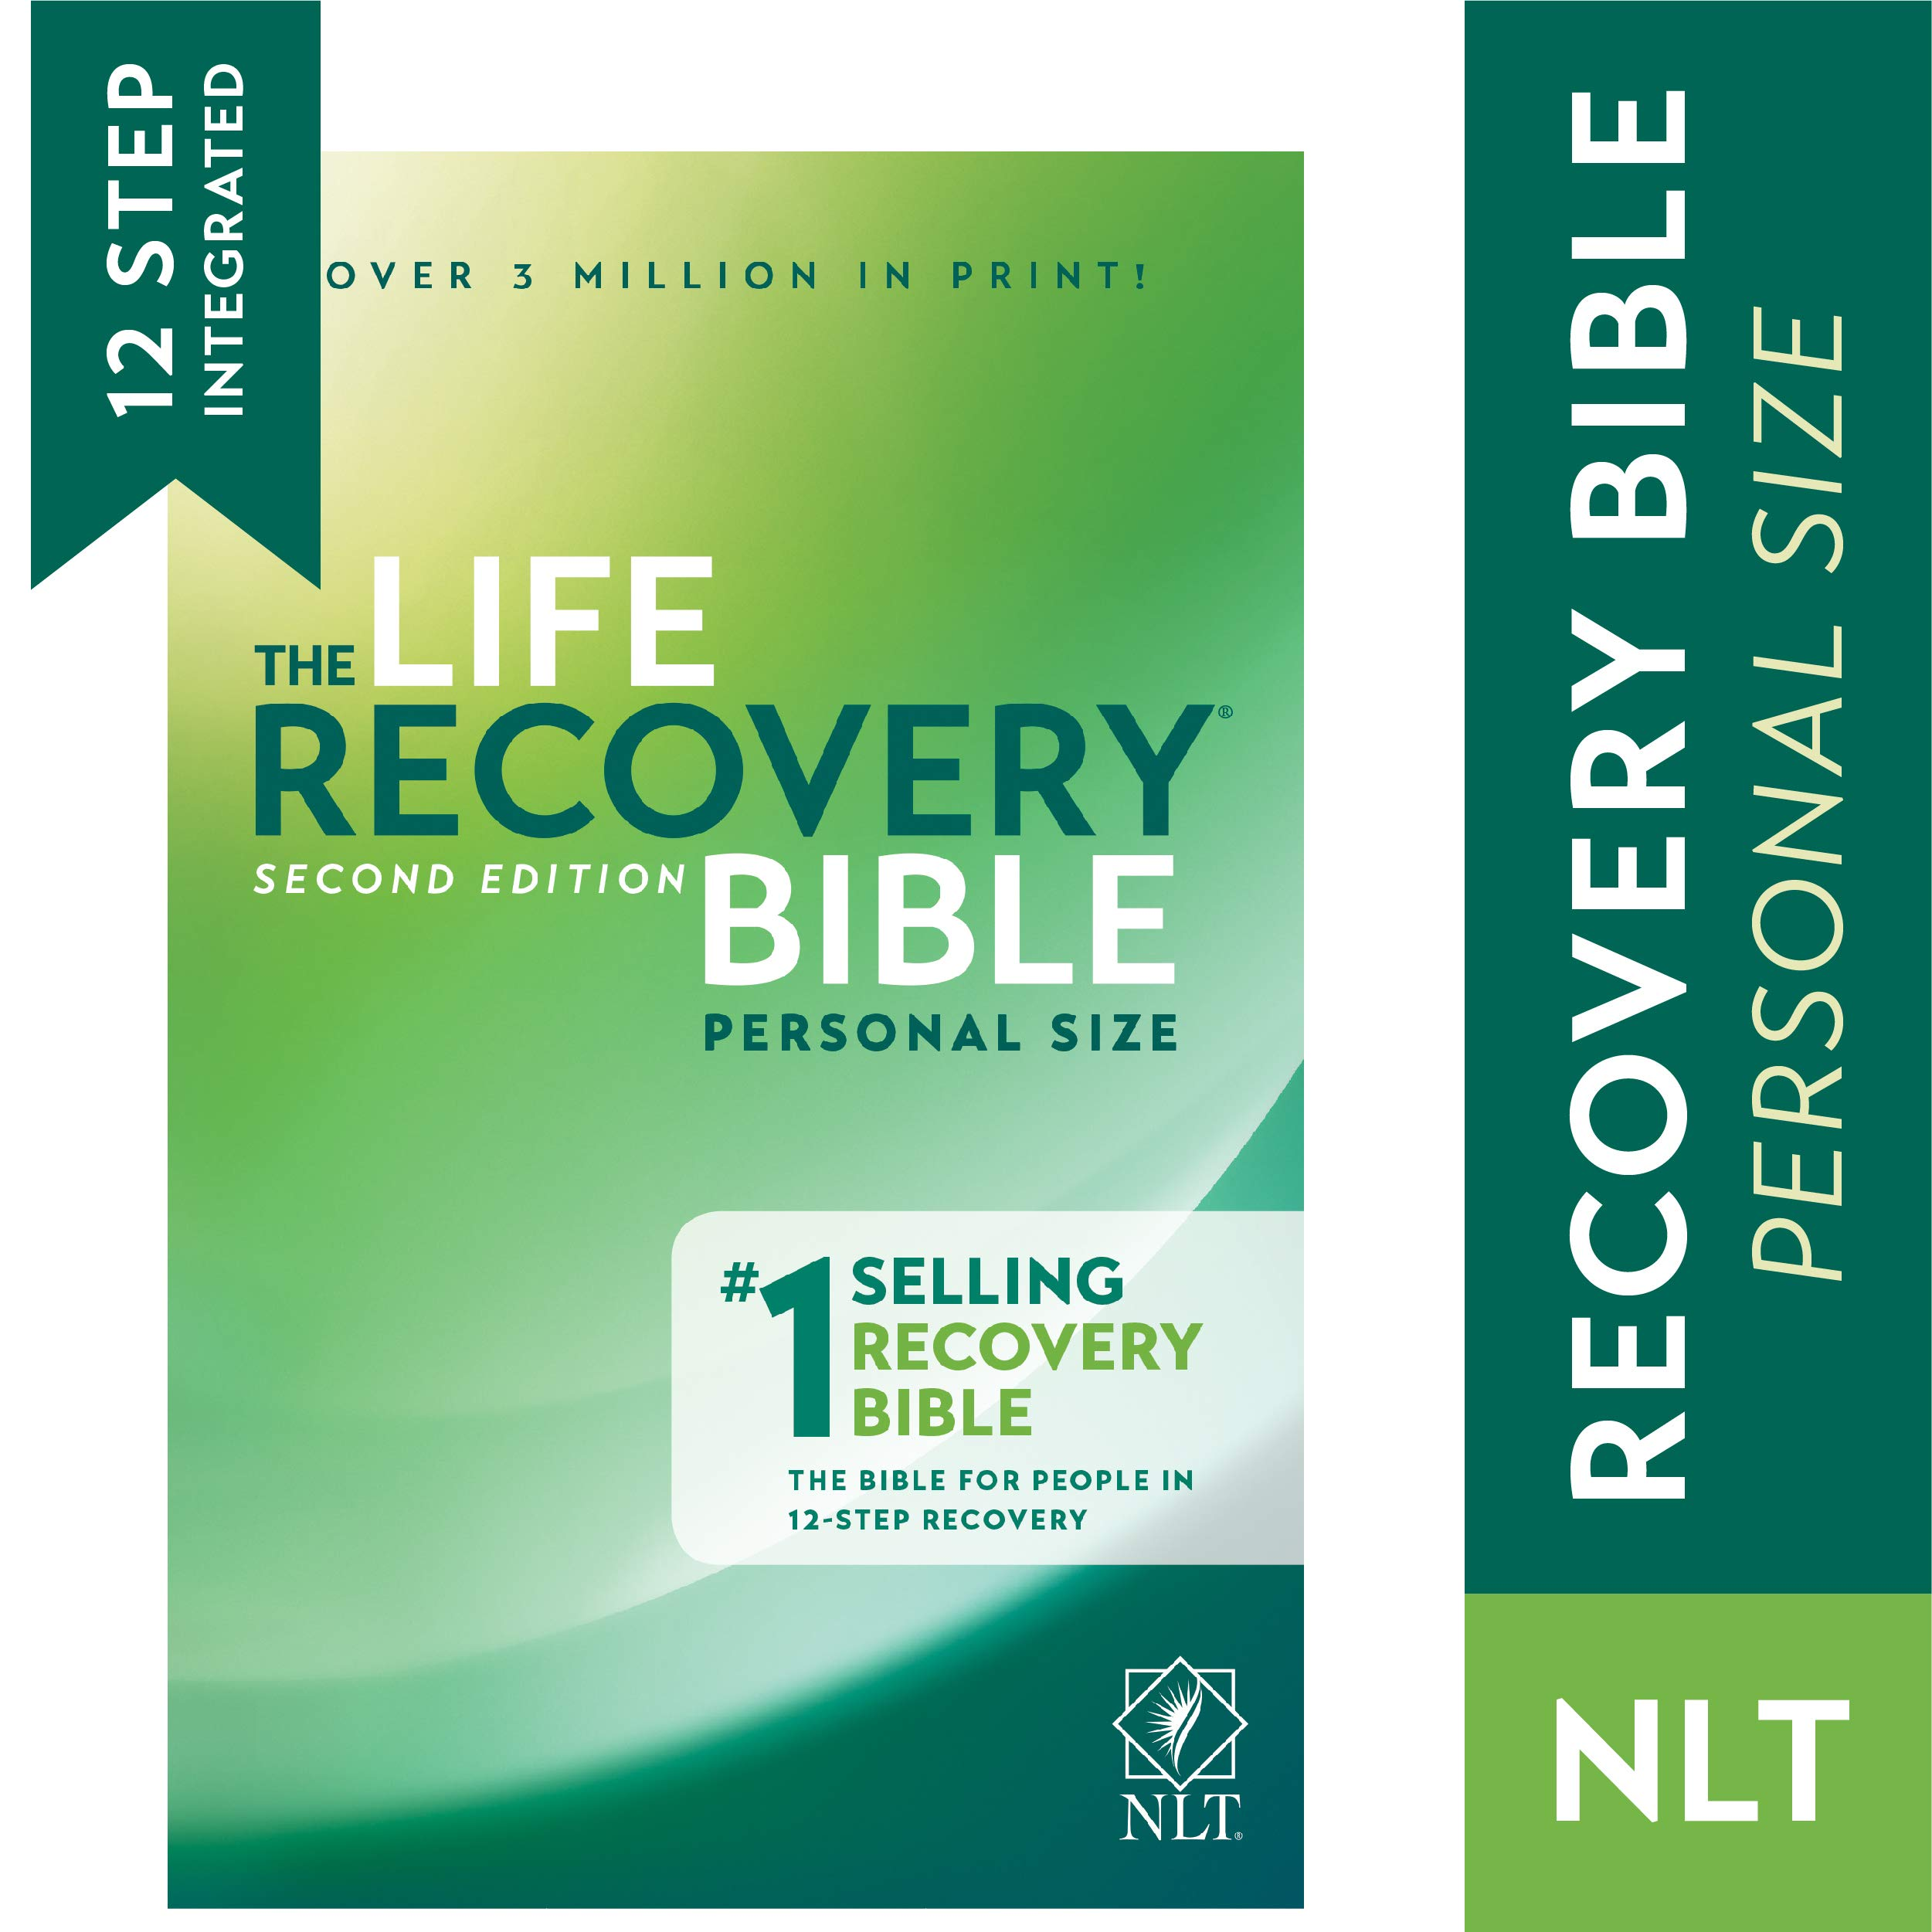 Tyndale NLT Life Recovery Bible (Personal Size, Softcover) 2nd Edition – Addiction Bible Tied to 12 Steps of Recovery…